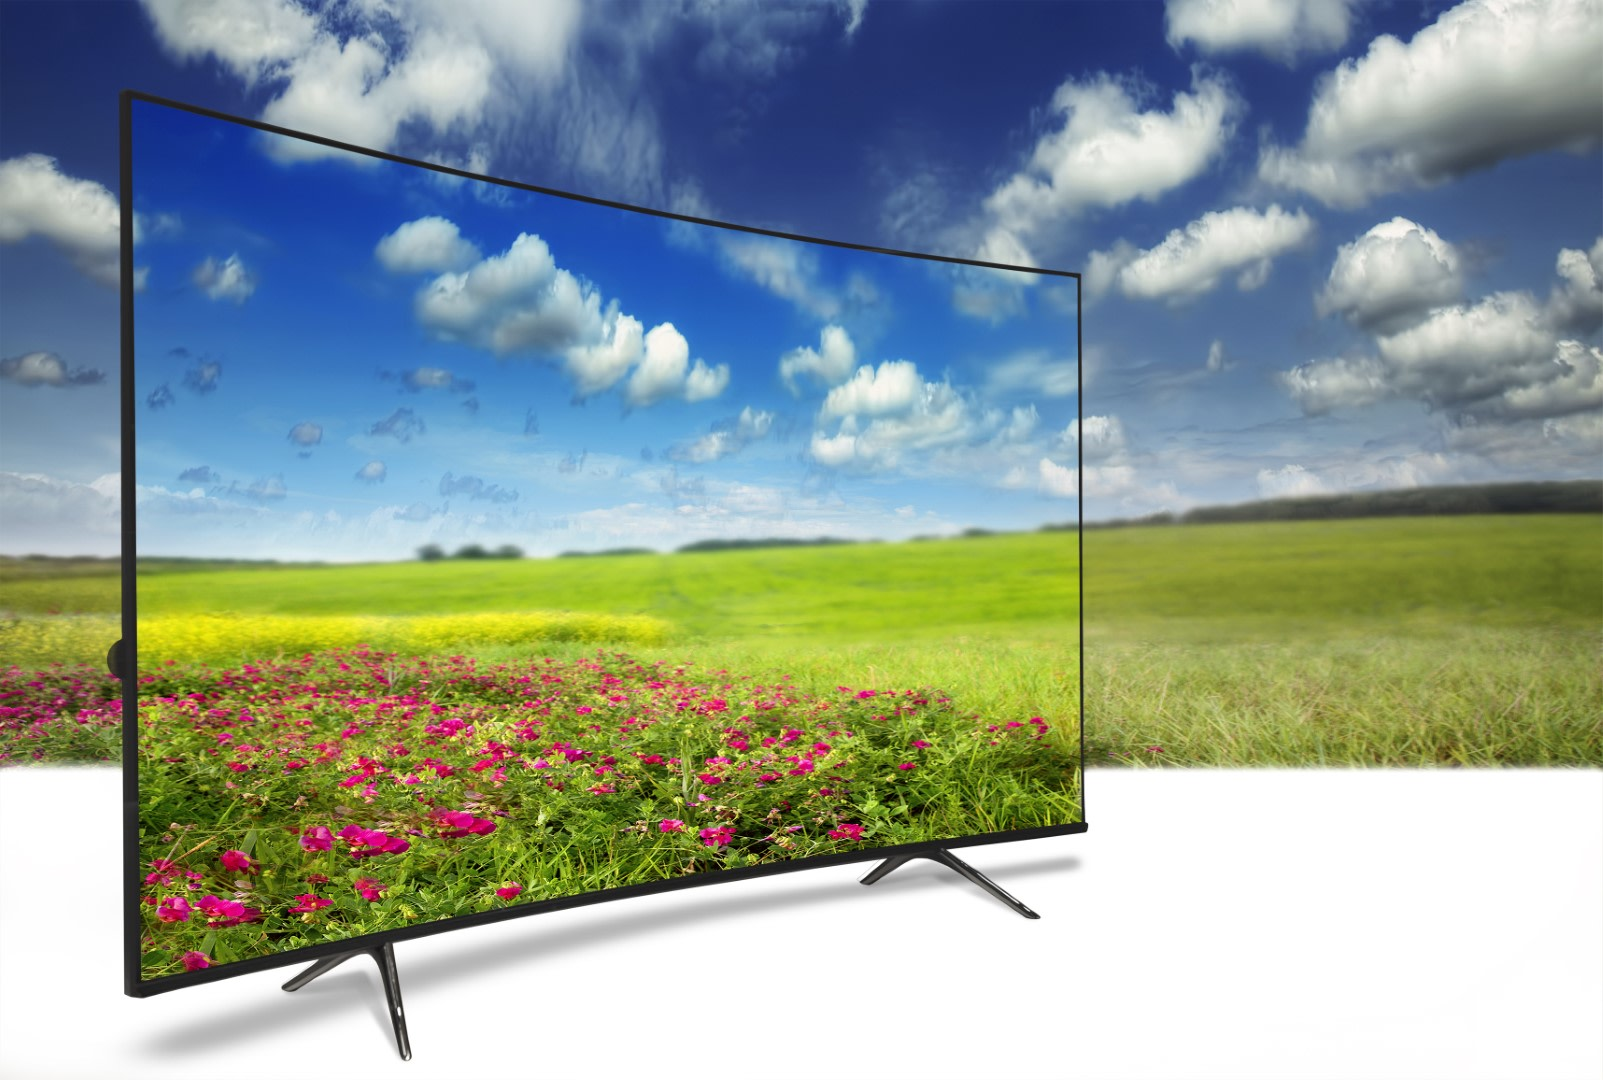 An image related to Reviewing Big Screen Curved TVs